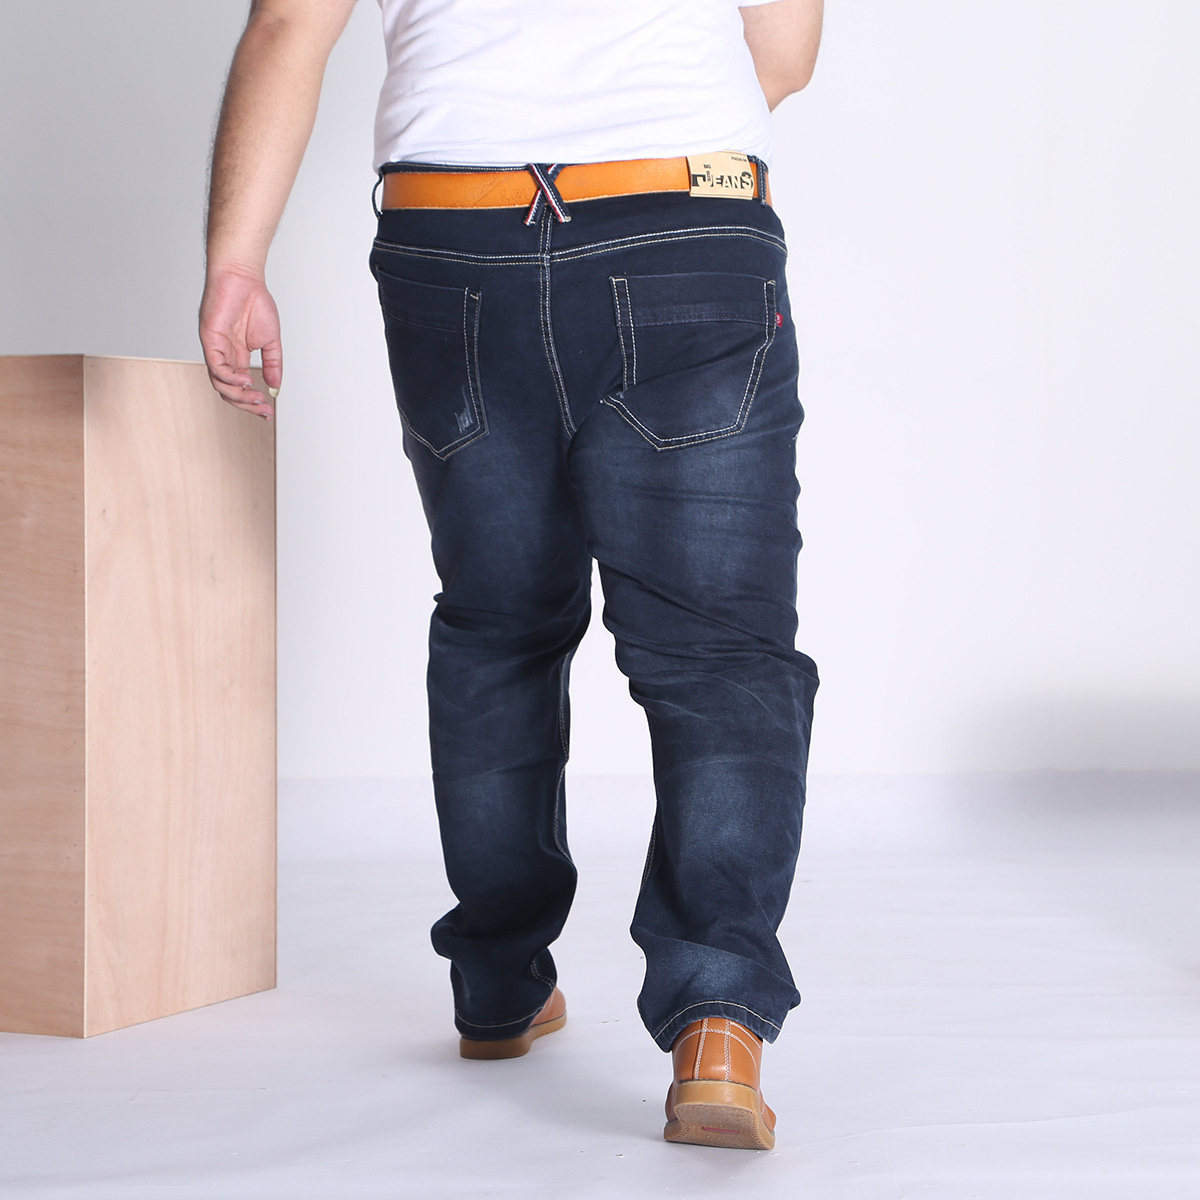 15006 Autumn And Winter New Style Casual Business Men's Trousers Large Size Jeans Men's Elasticity Plus-sized Pants 32-48